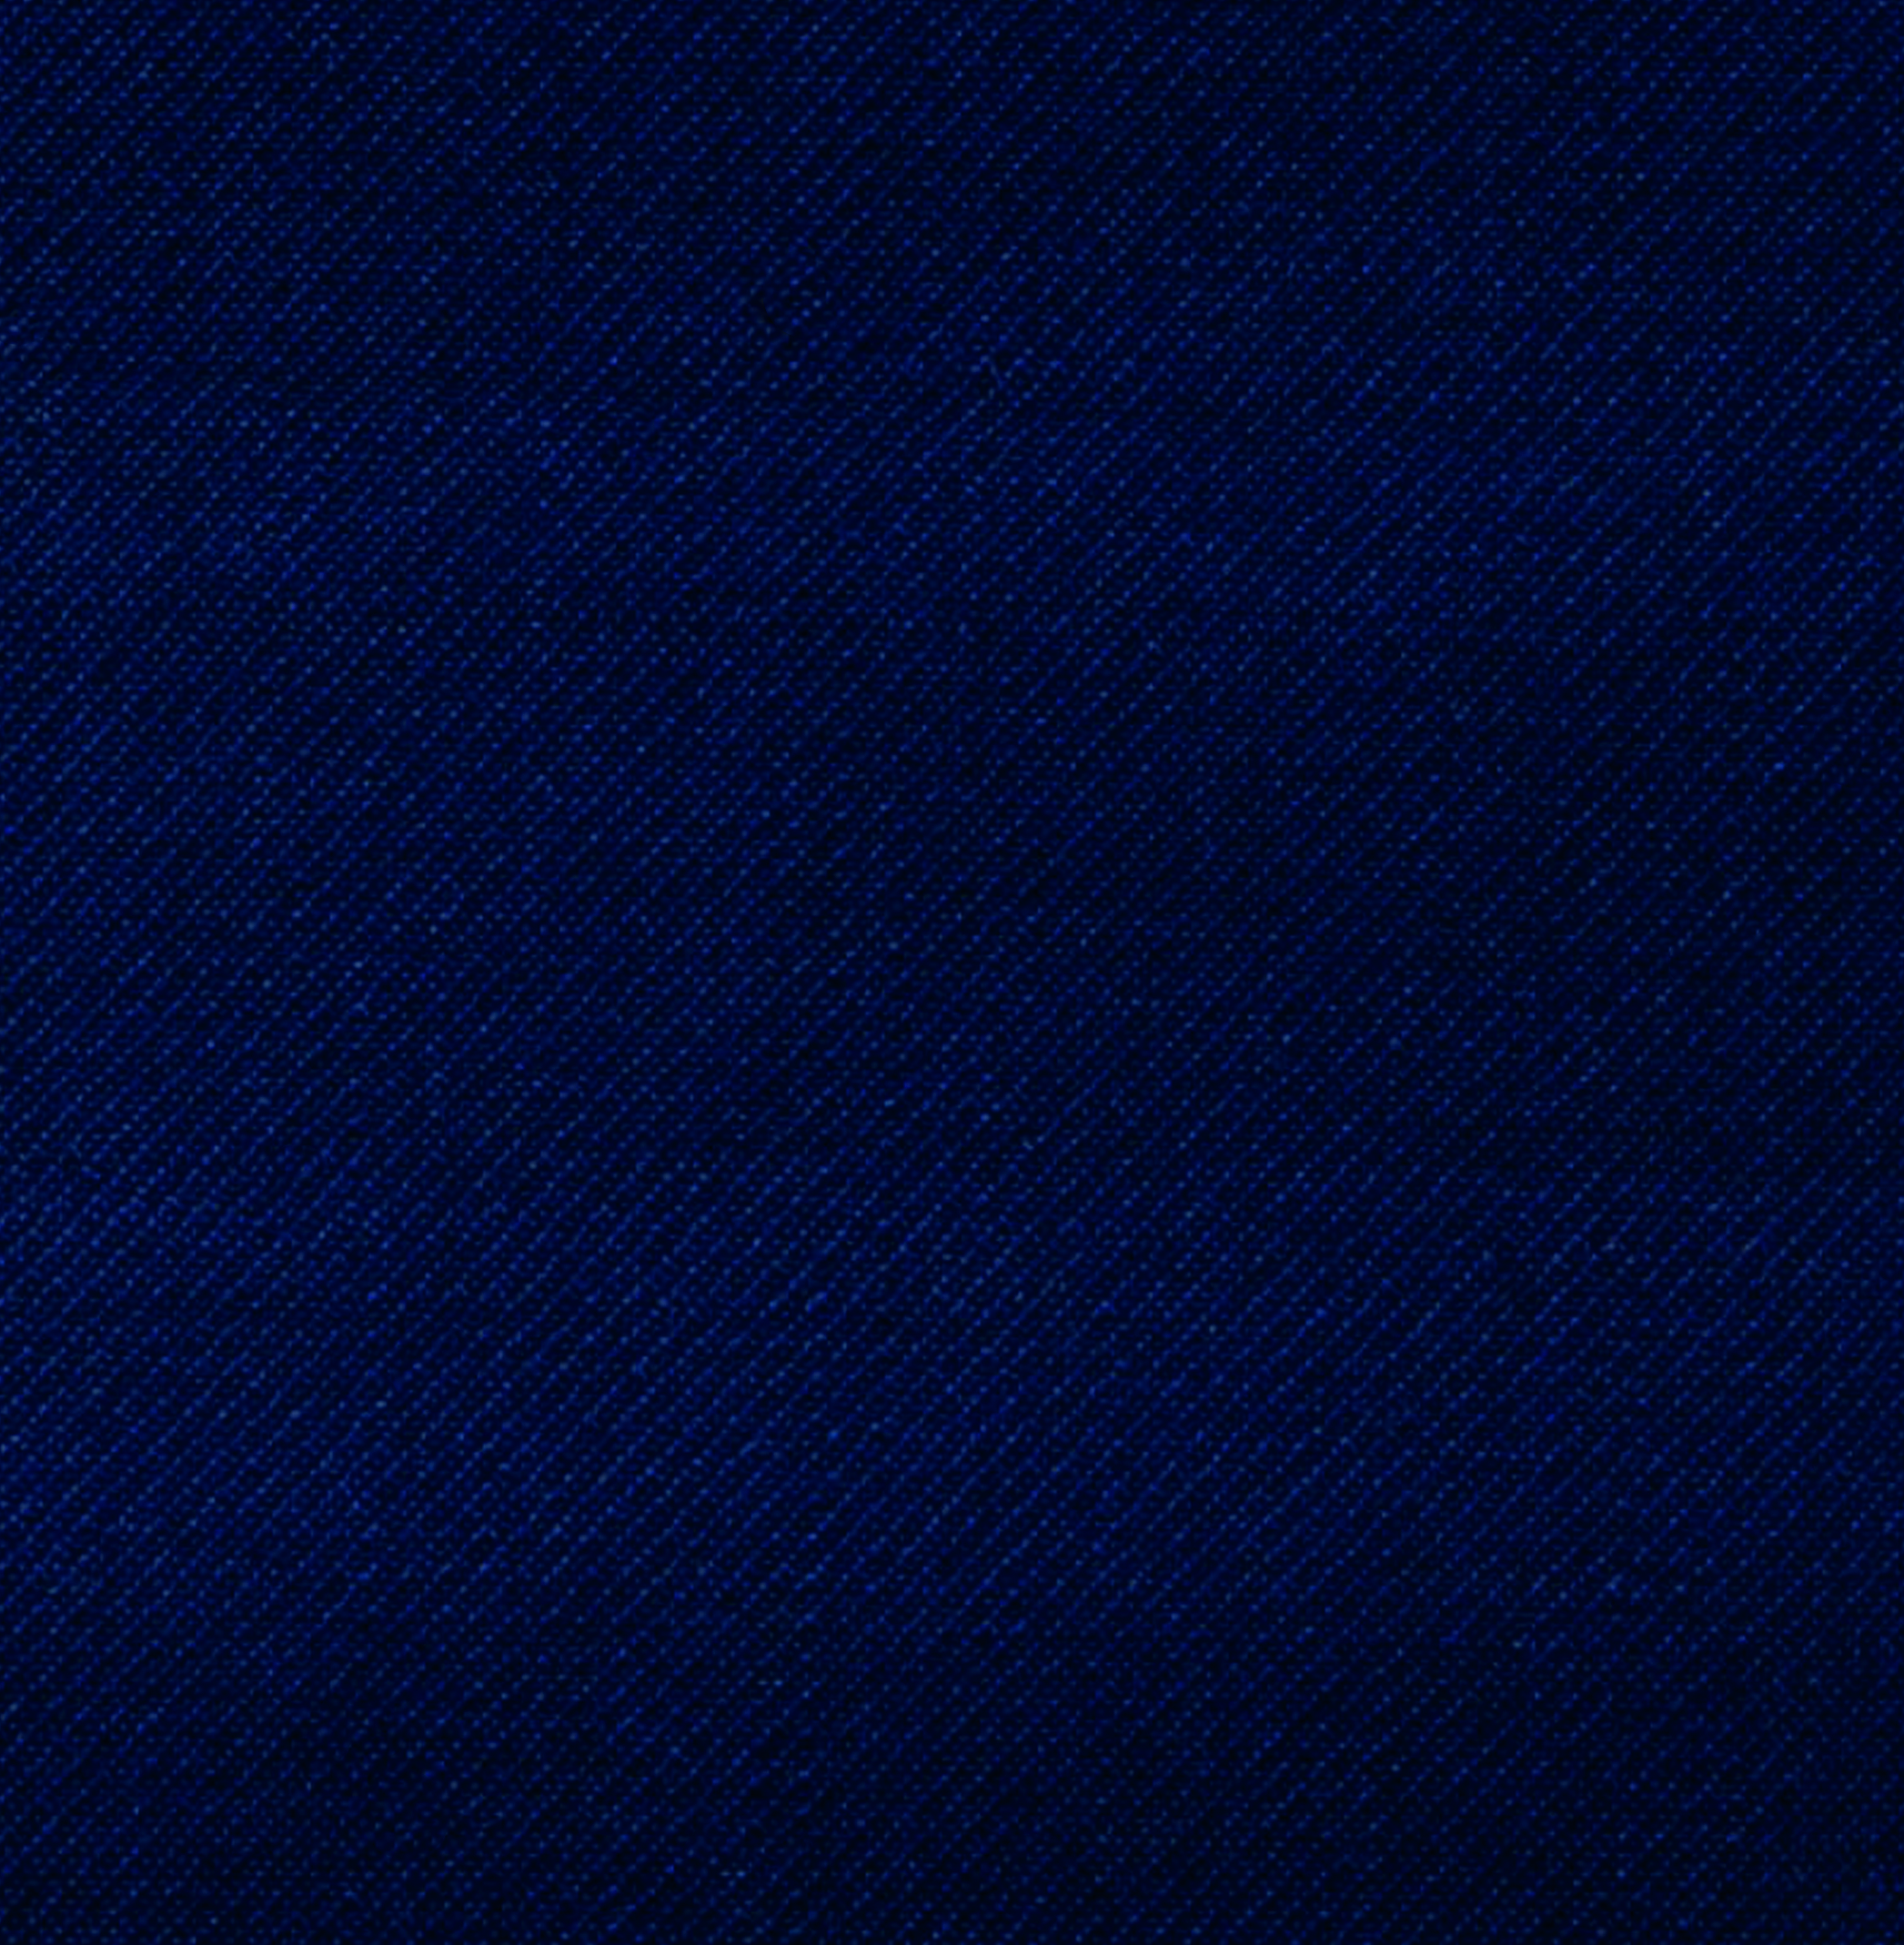 Buy tailor made shirts online - Easy Care Wool Mix - Navy (With Lining)